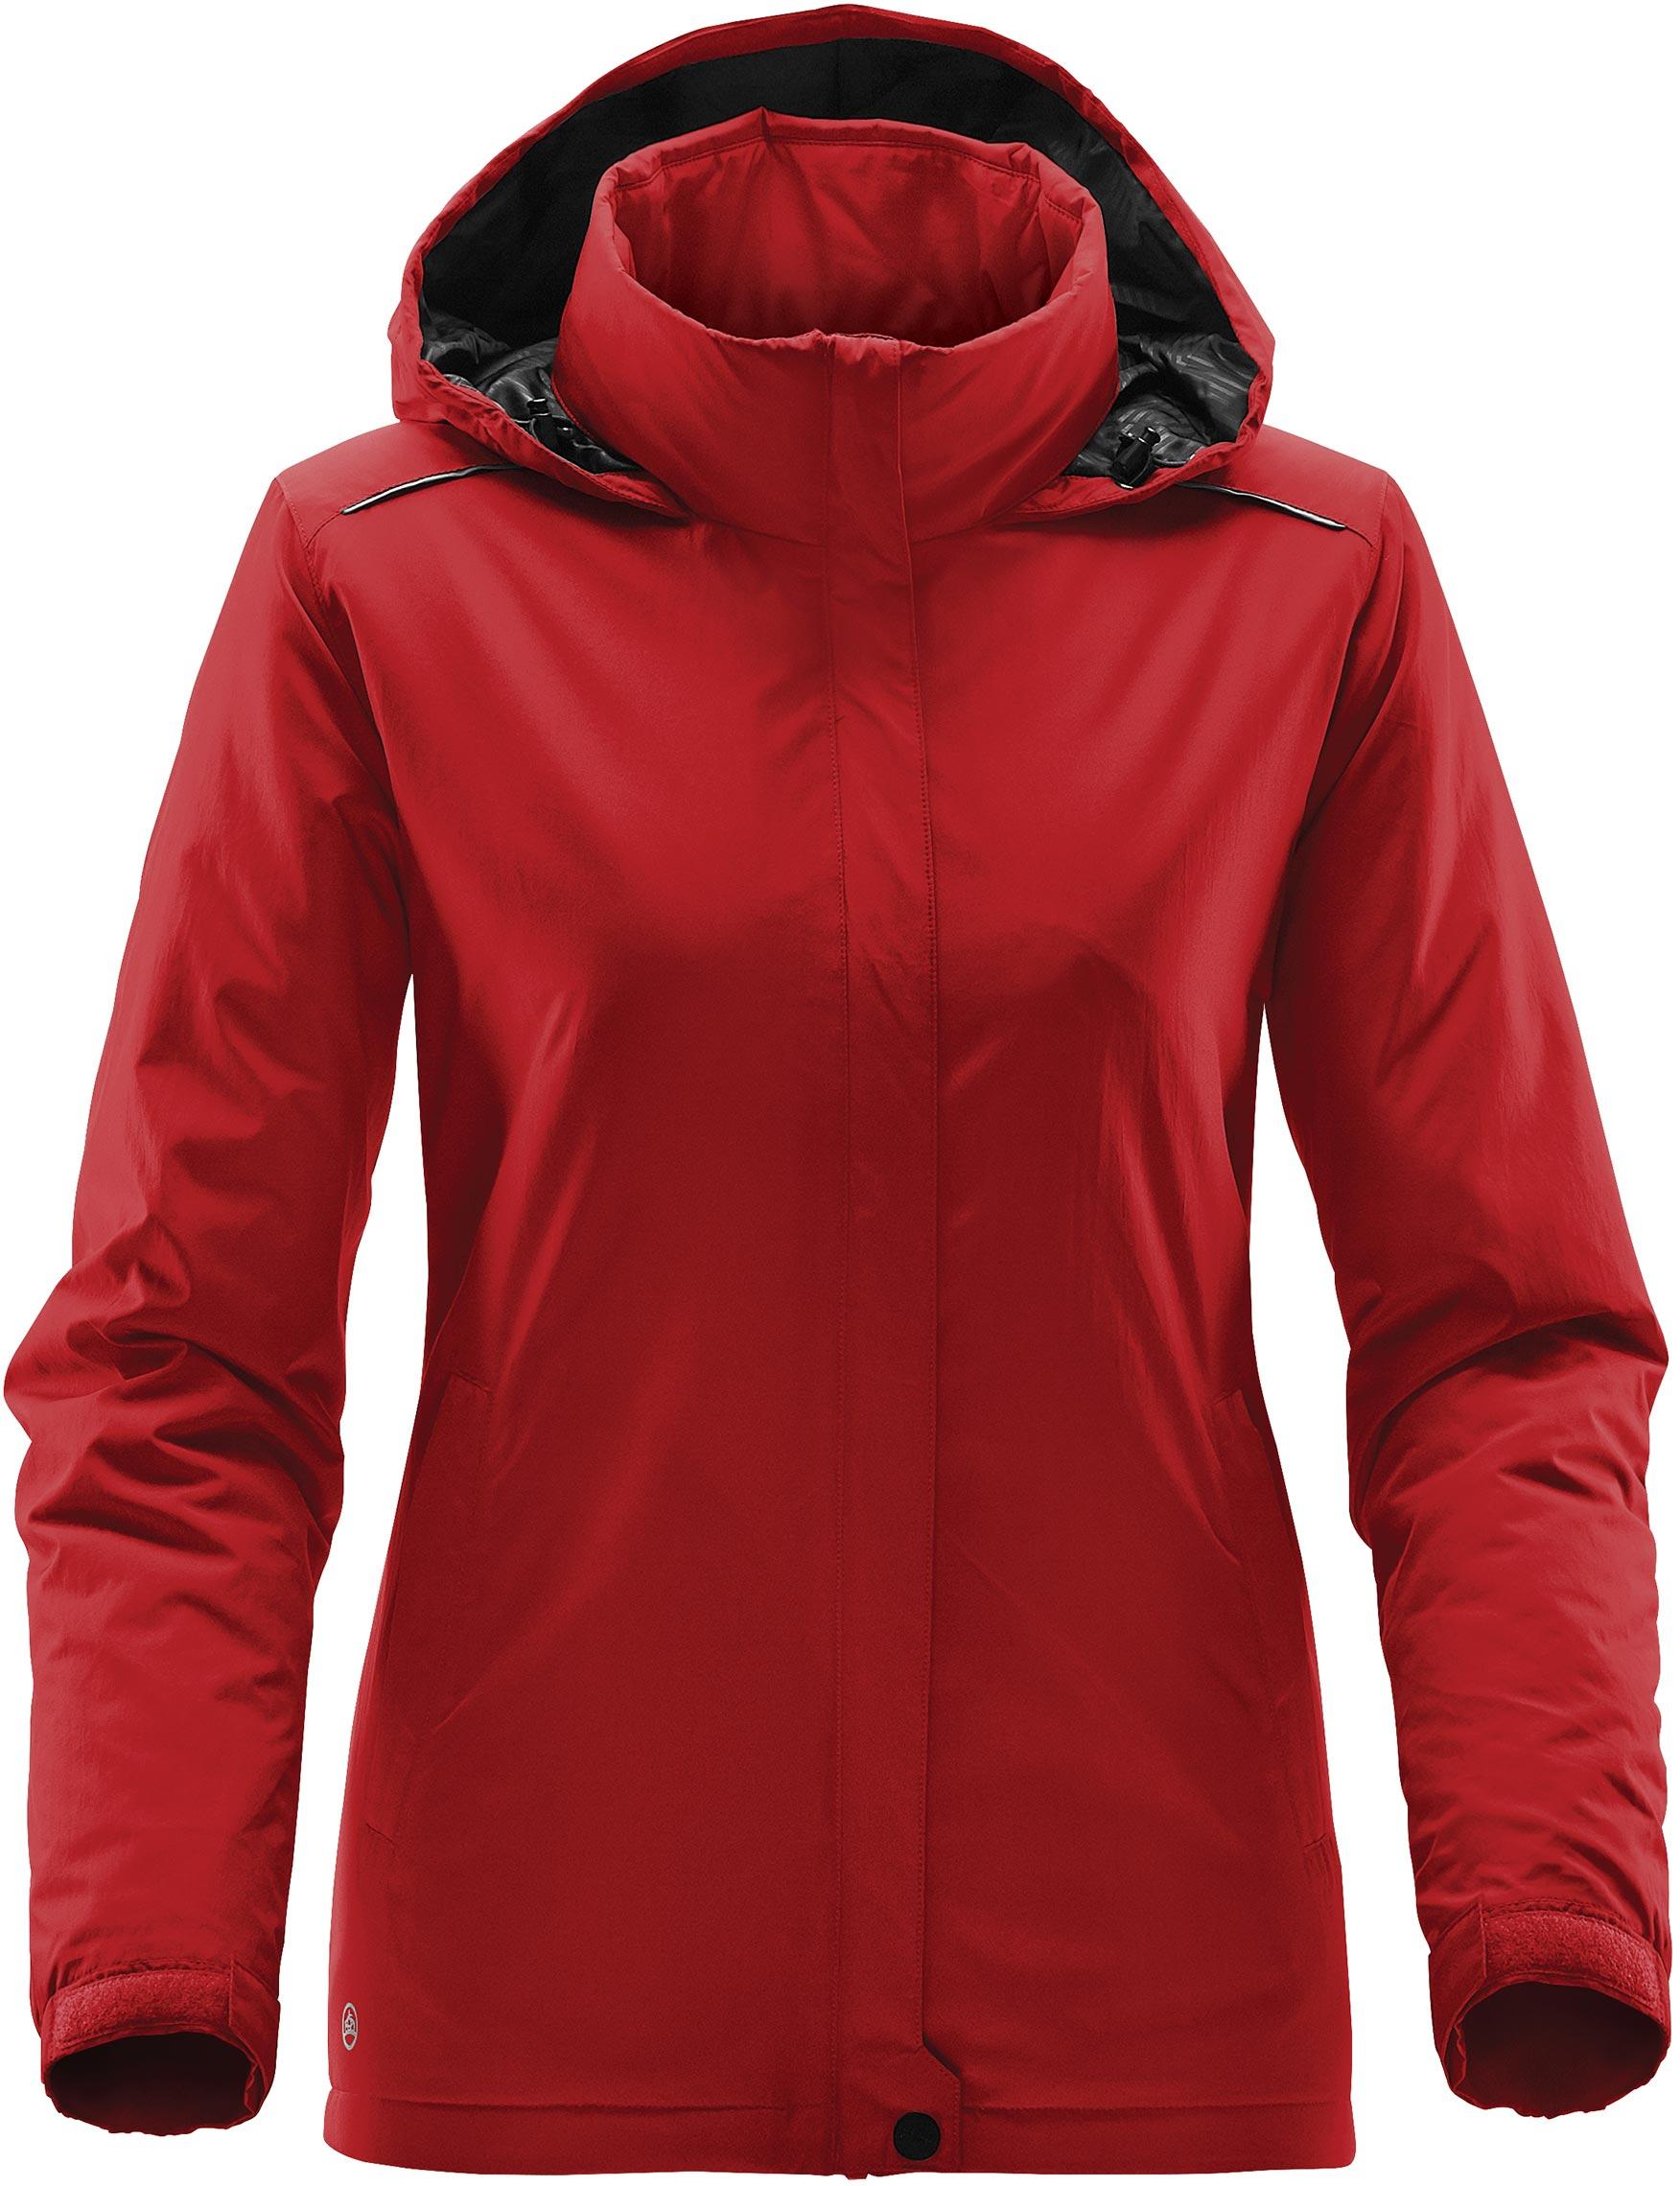 Stormtech KXR-1W - Women's Nautilus Insulated Jacket